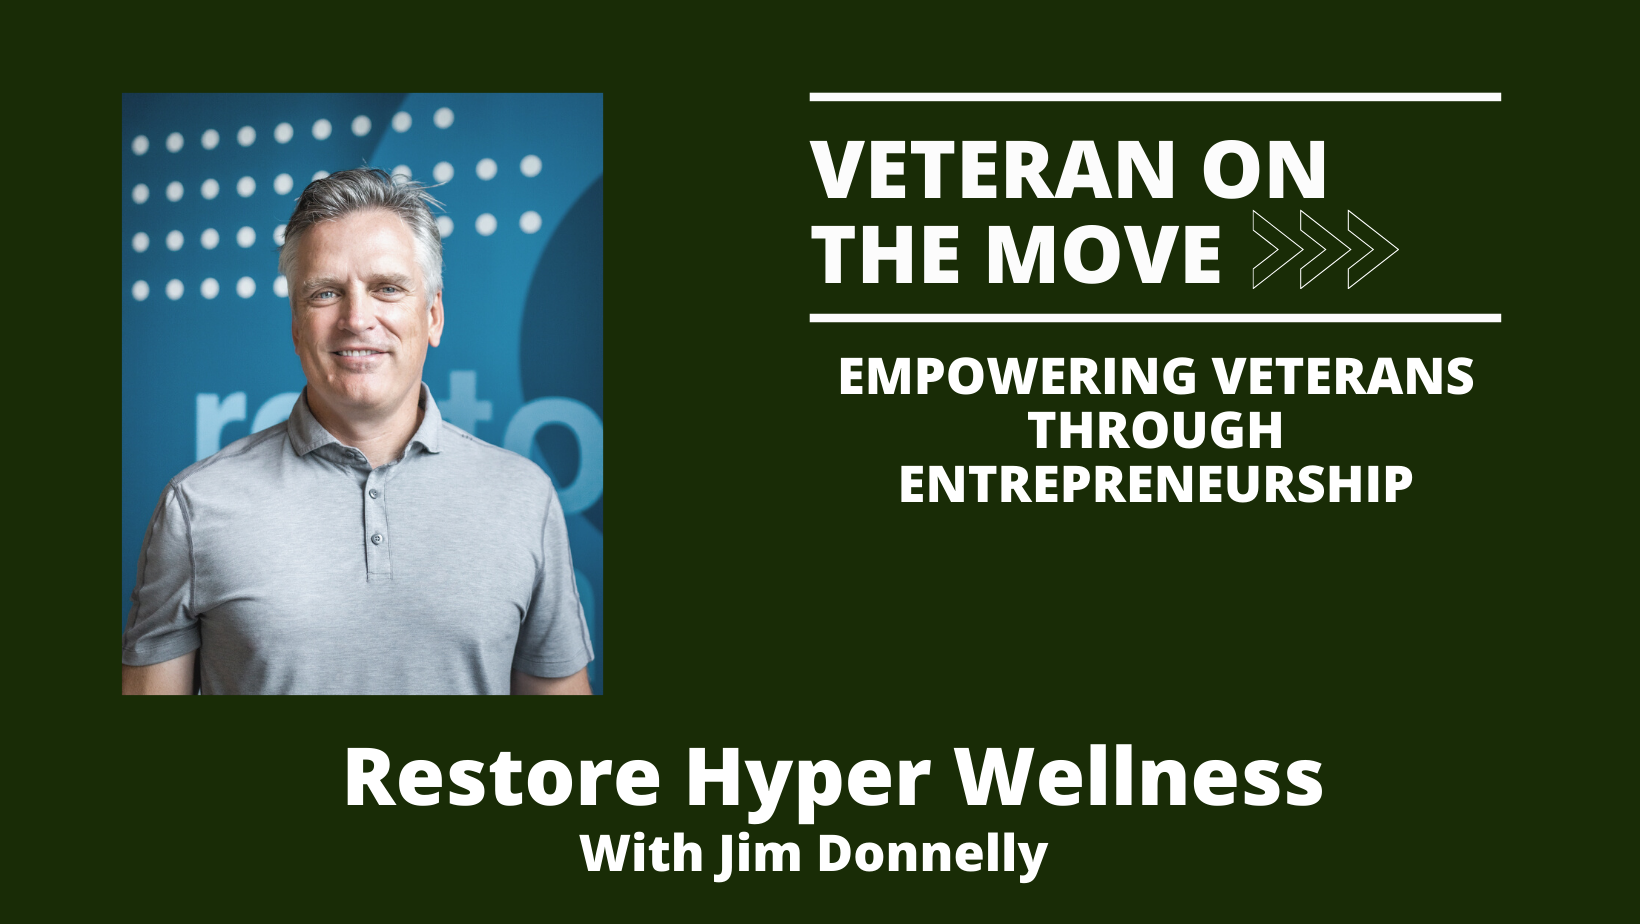 Jim Donnelly, Veteran On The Move